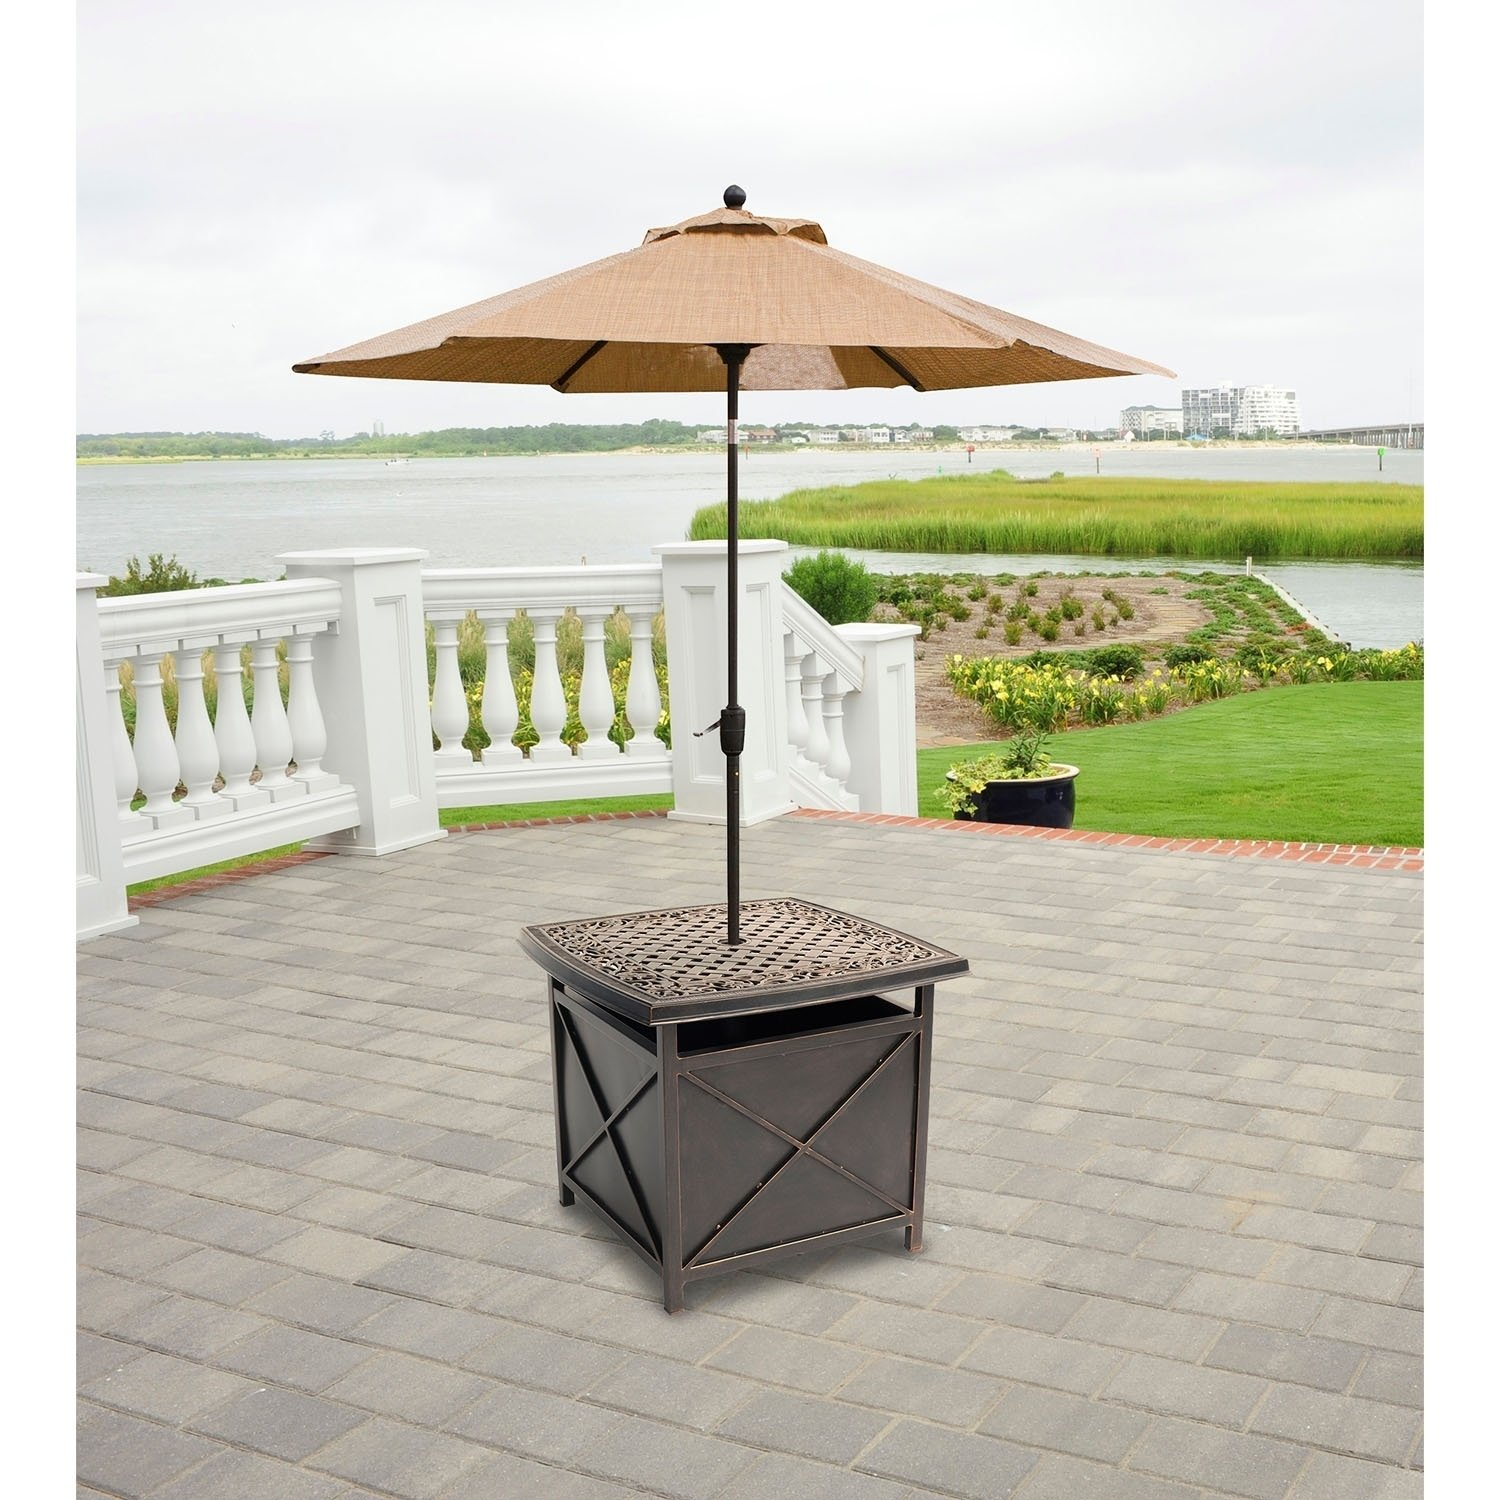 hanover outdoor traditions tradumbtbl cast top side table and umbrella stand dorm accessories nautical tures bronze wall clock piece patio set wedding linens whole jacket with